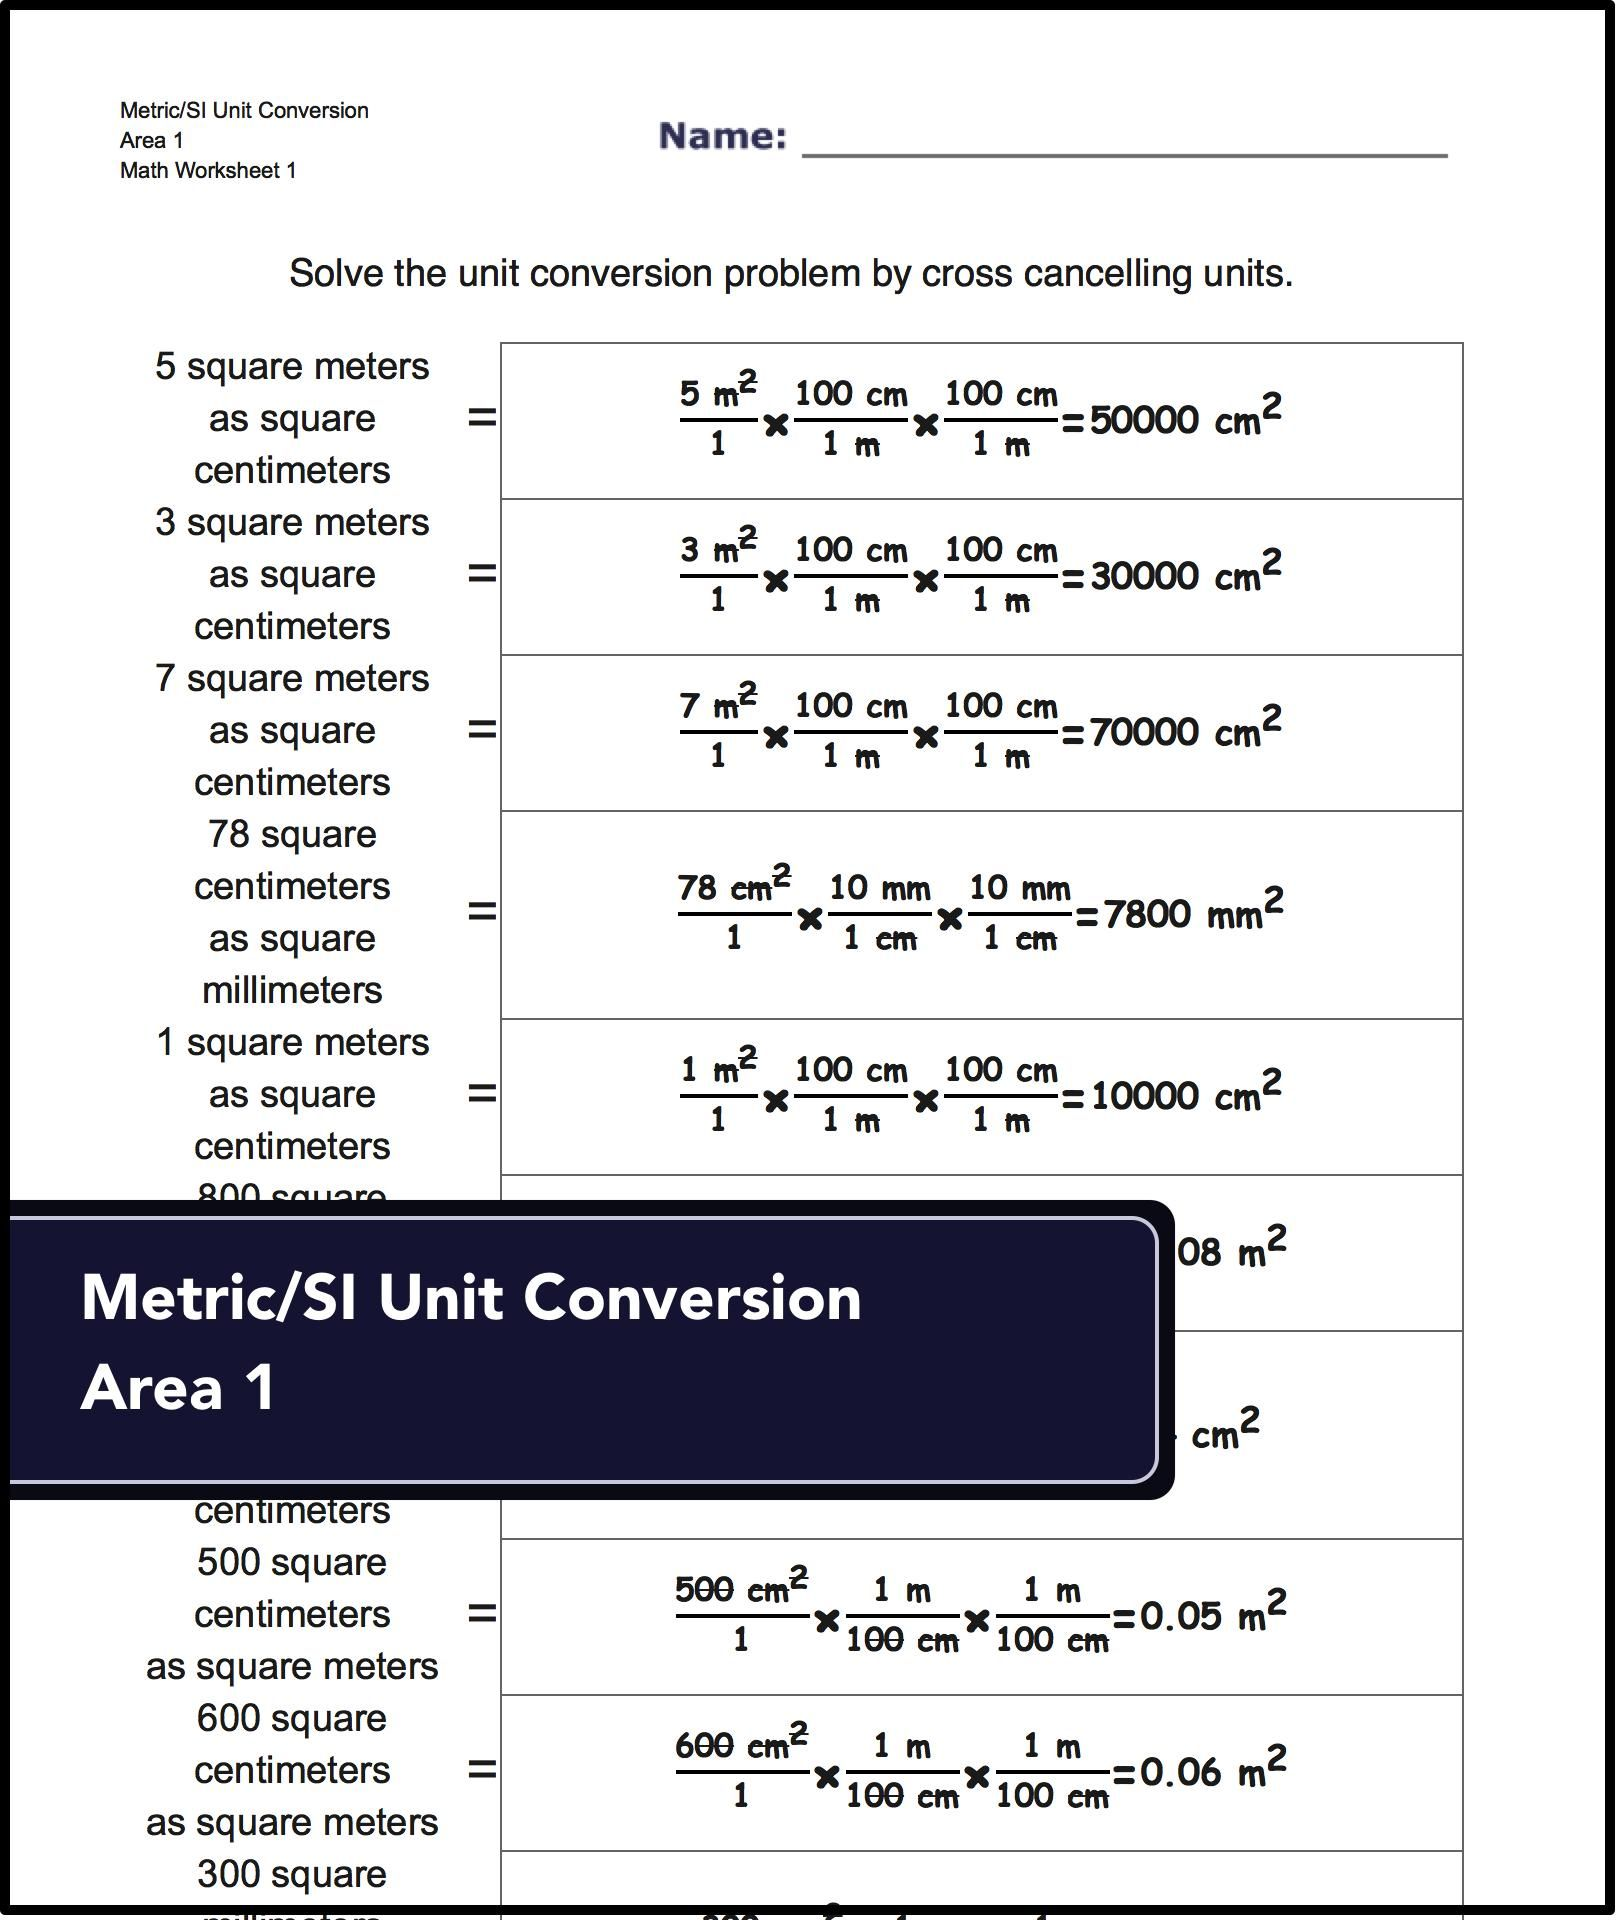 Unit Conversion Worksheets For Converting Metric Si Area